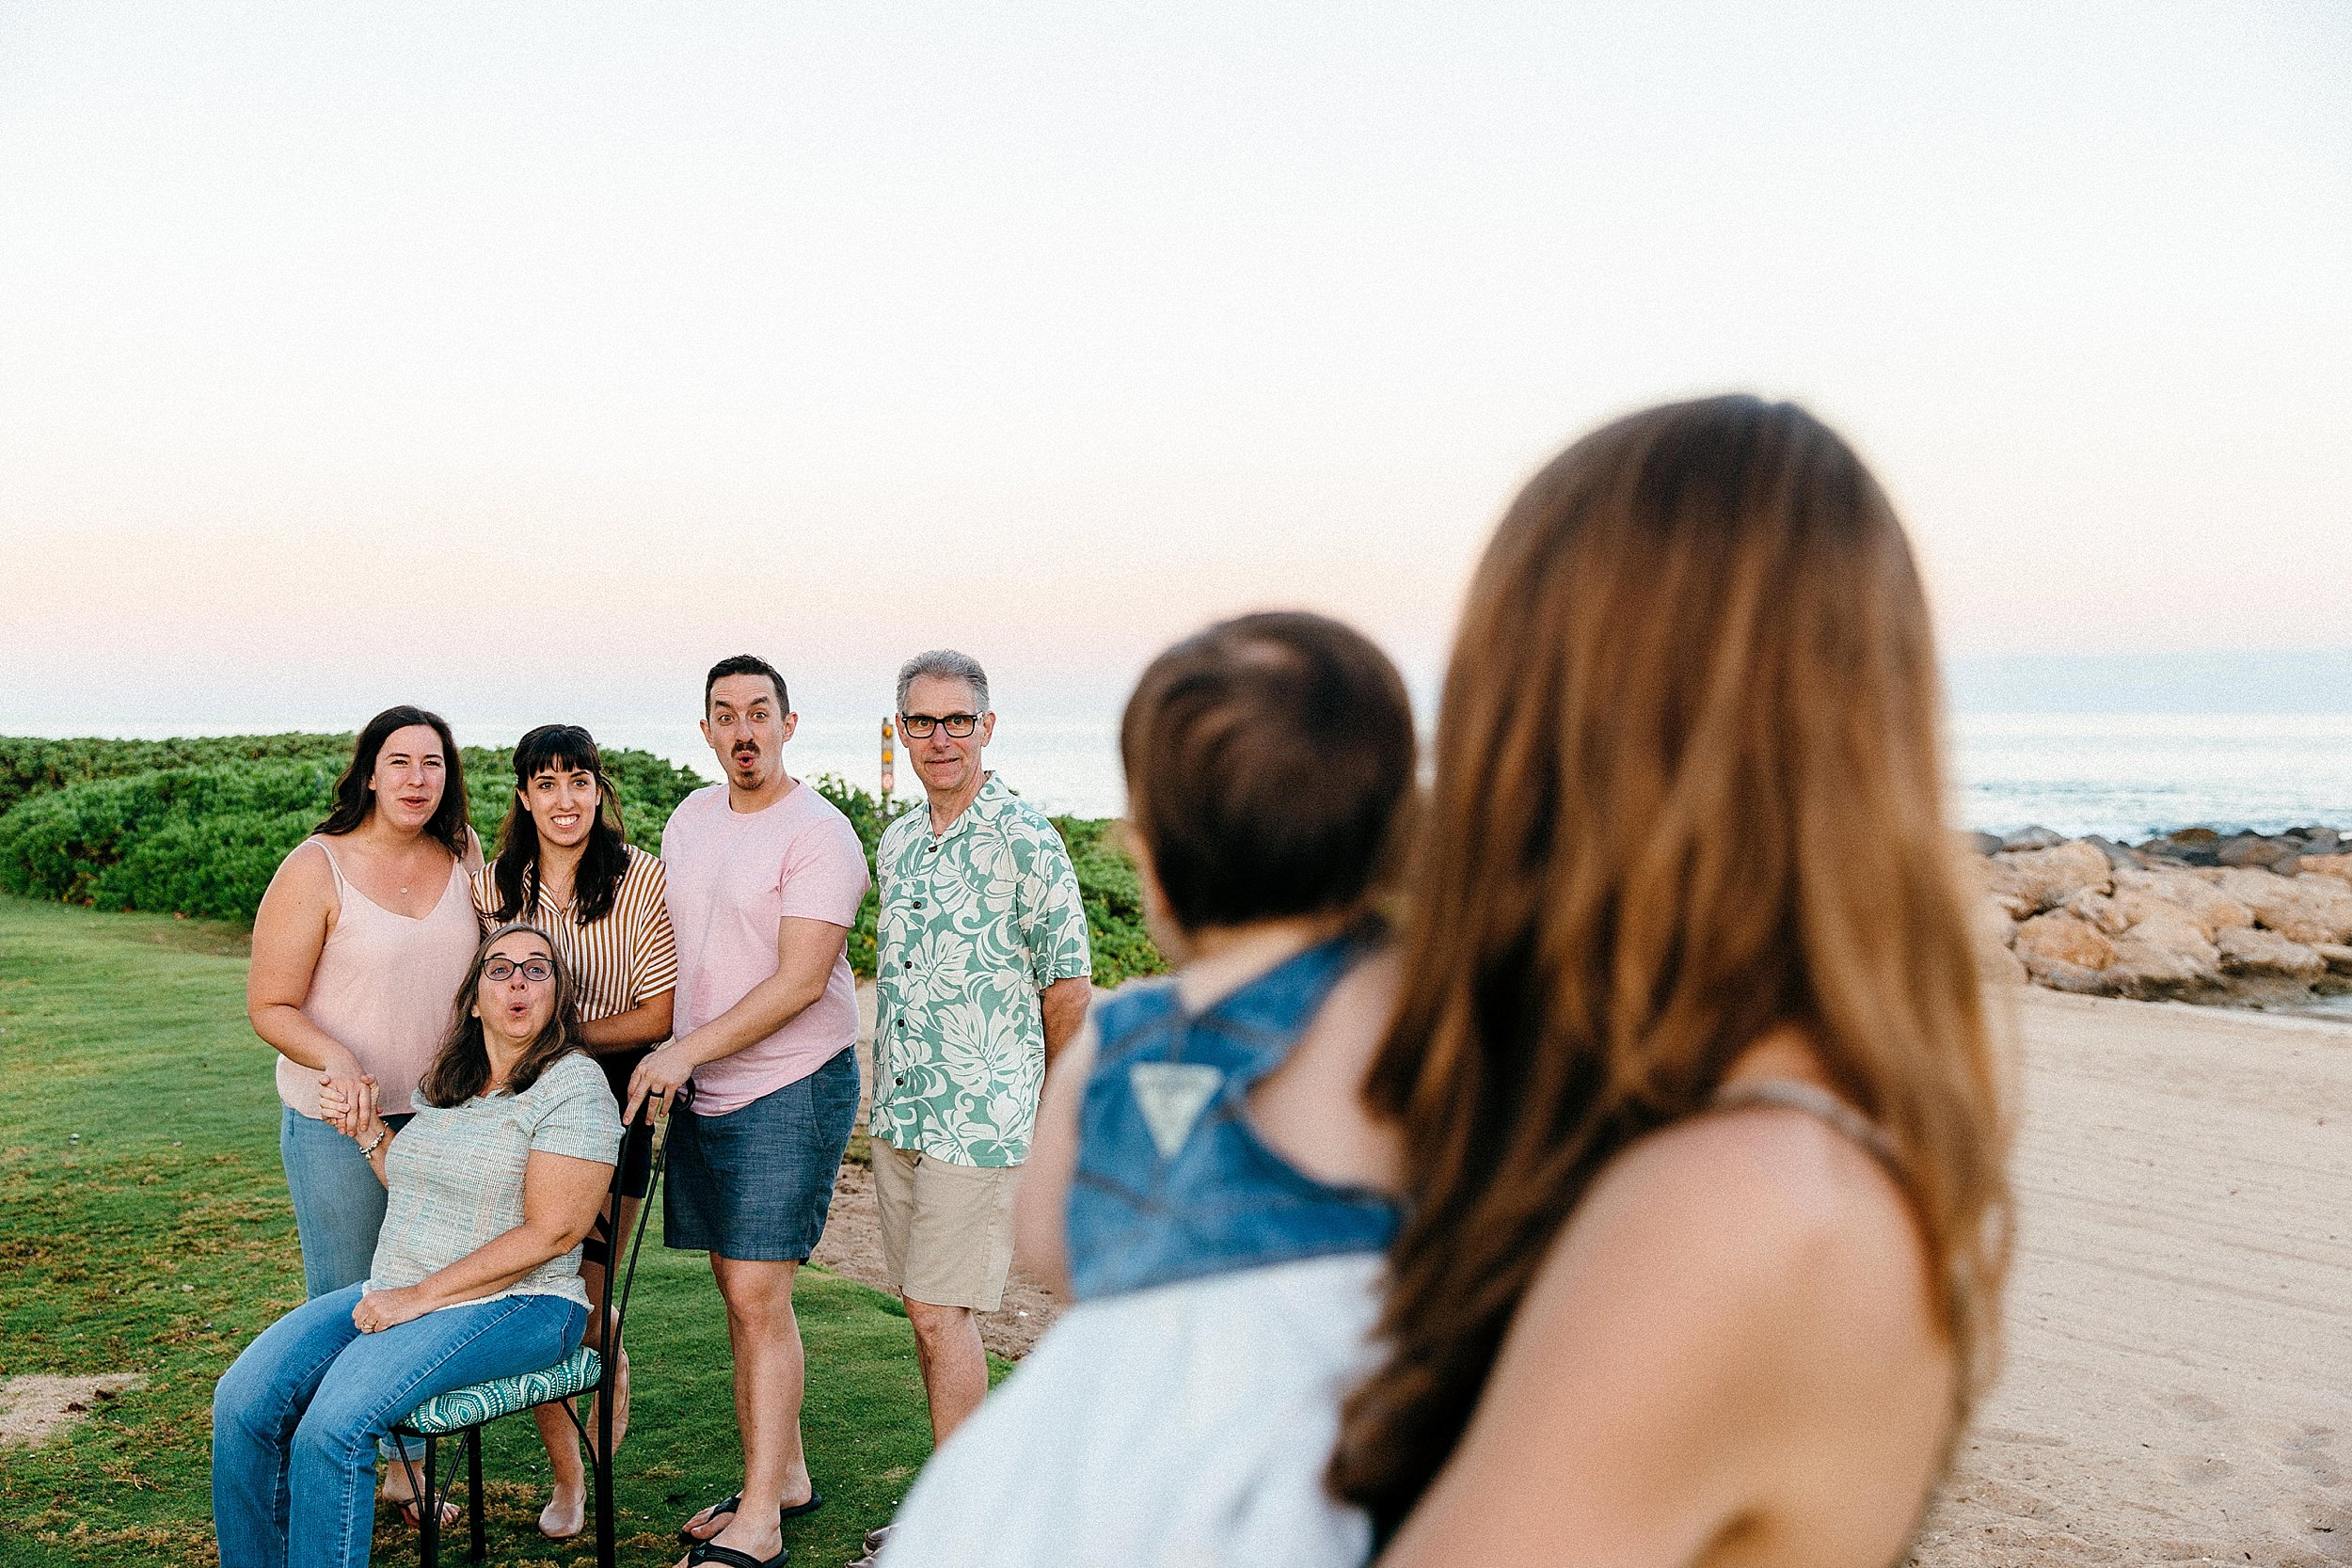 Extended family photos at Ko Olina on the west side of Oahu, Hawaii.